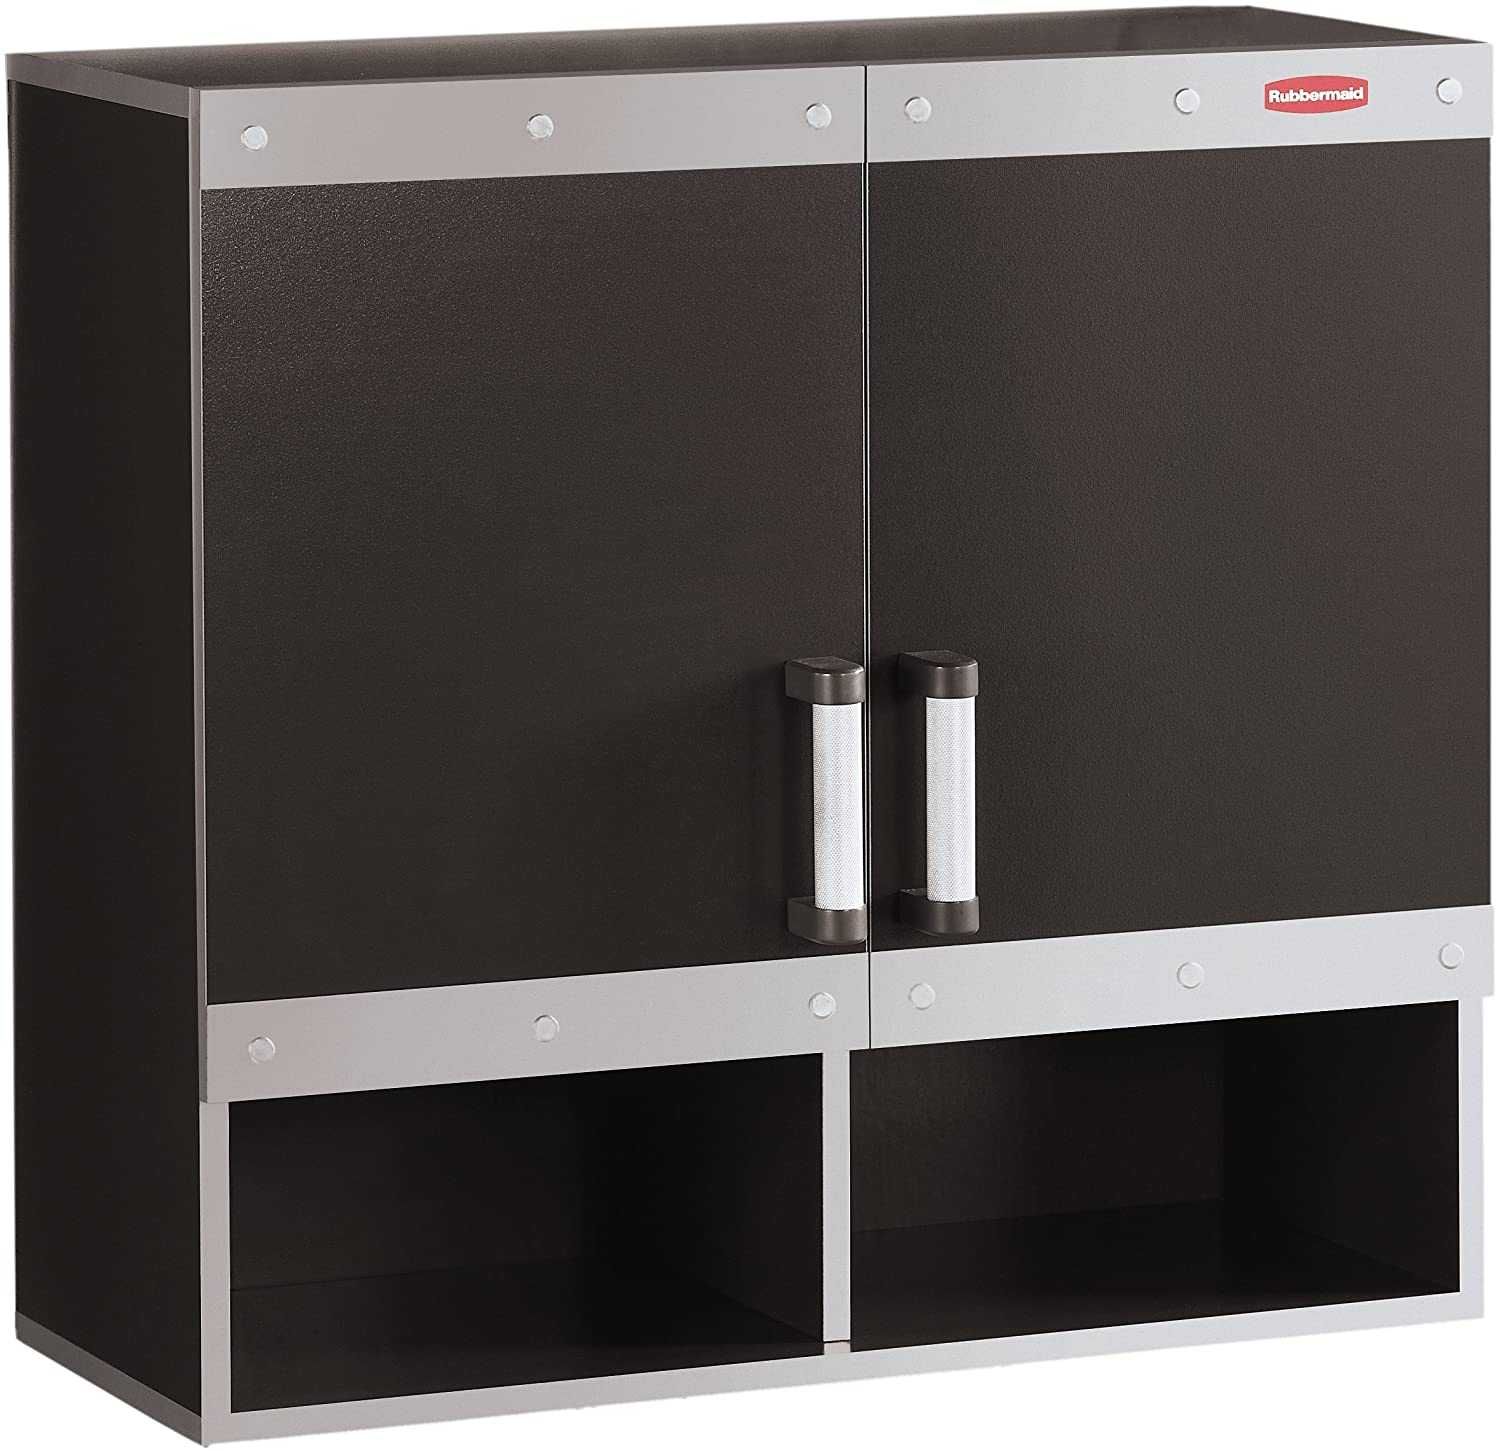 Amazon.com: Rubbermaid Fast track Garage Storage System Wall ...